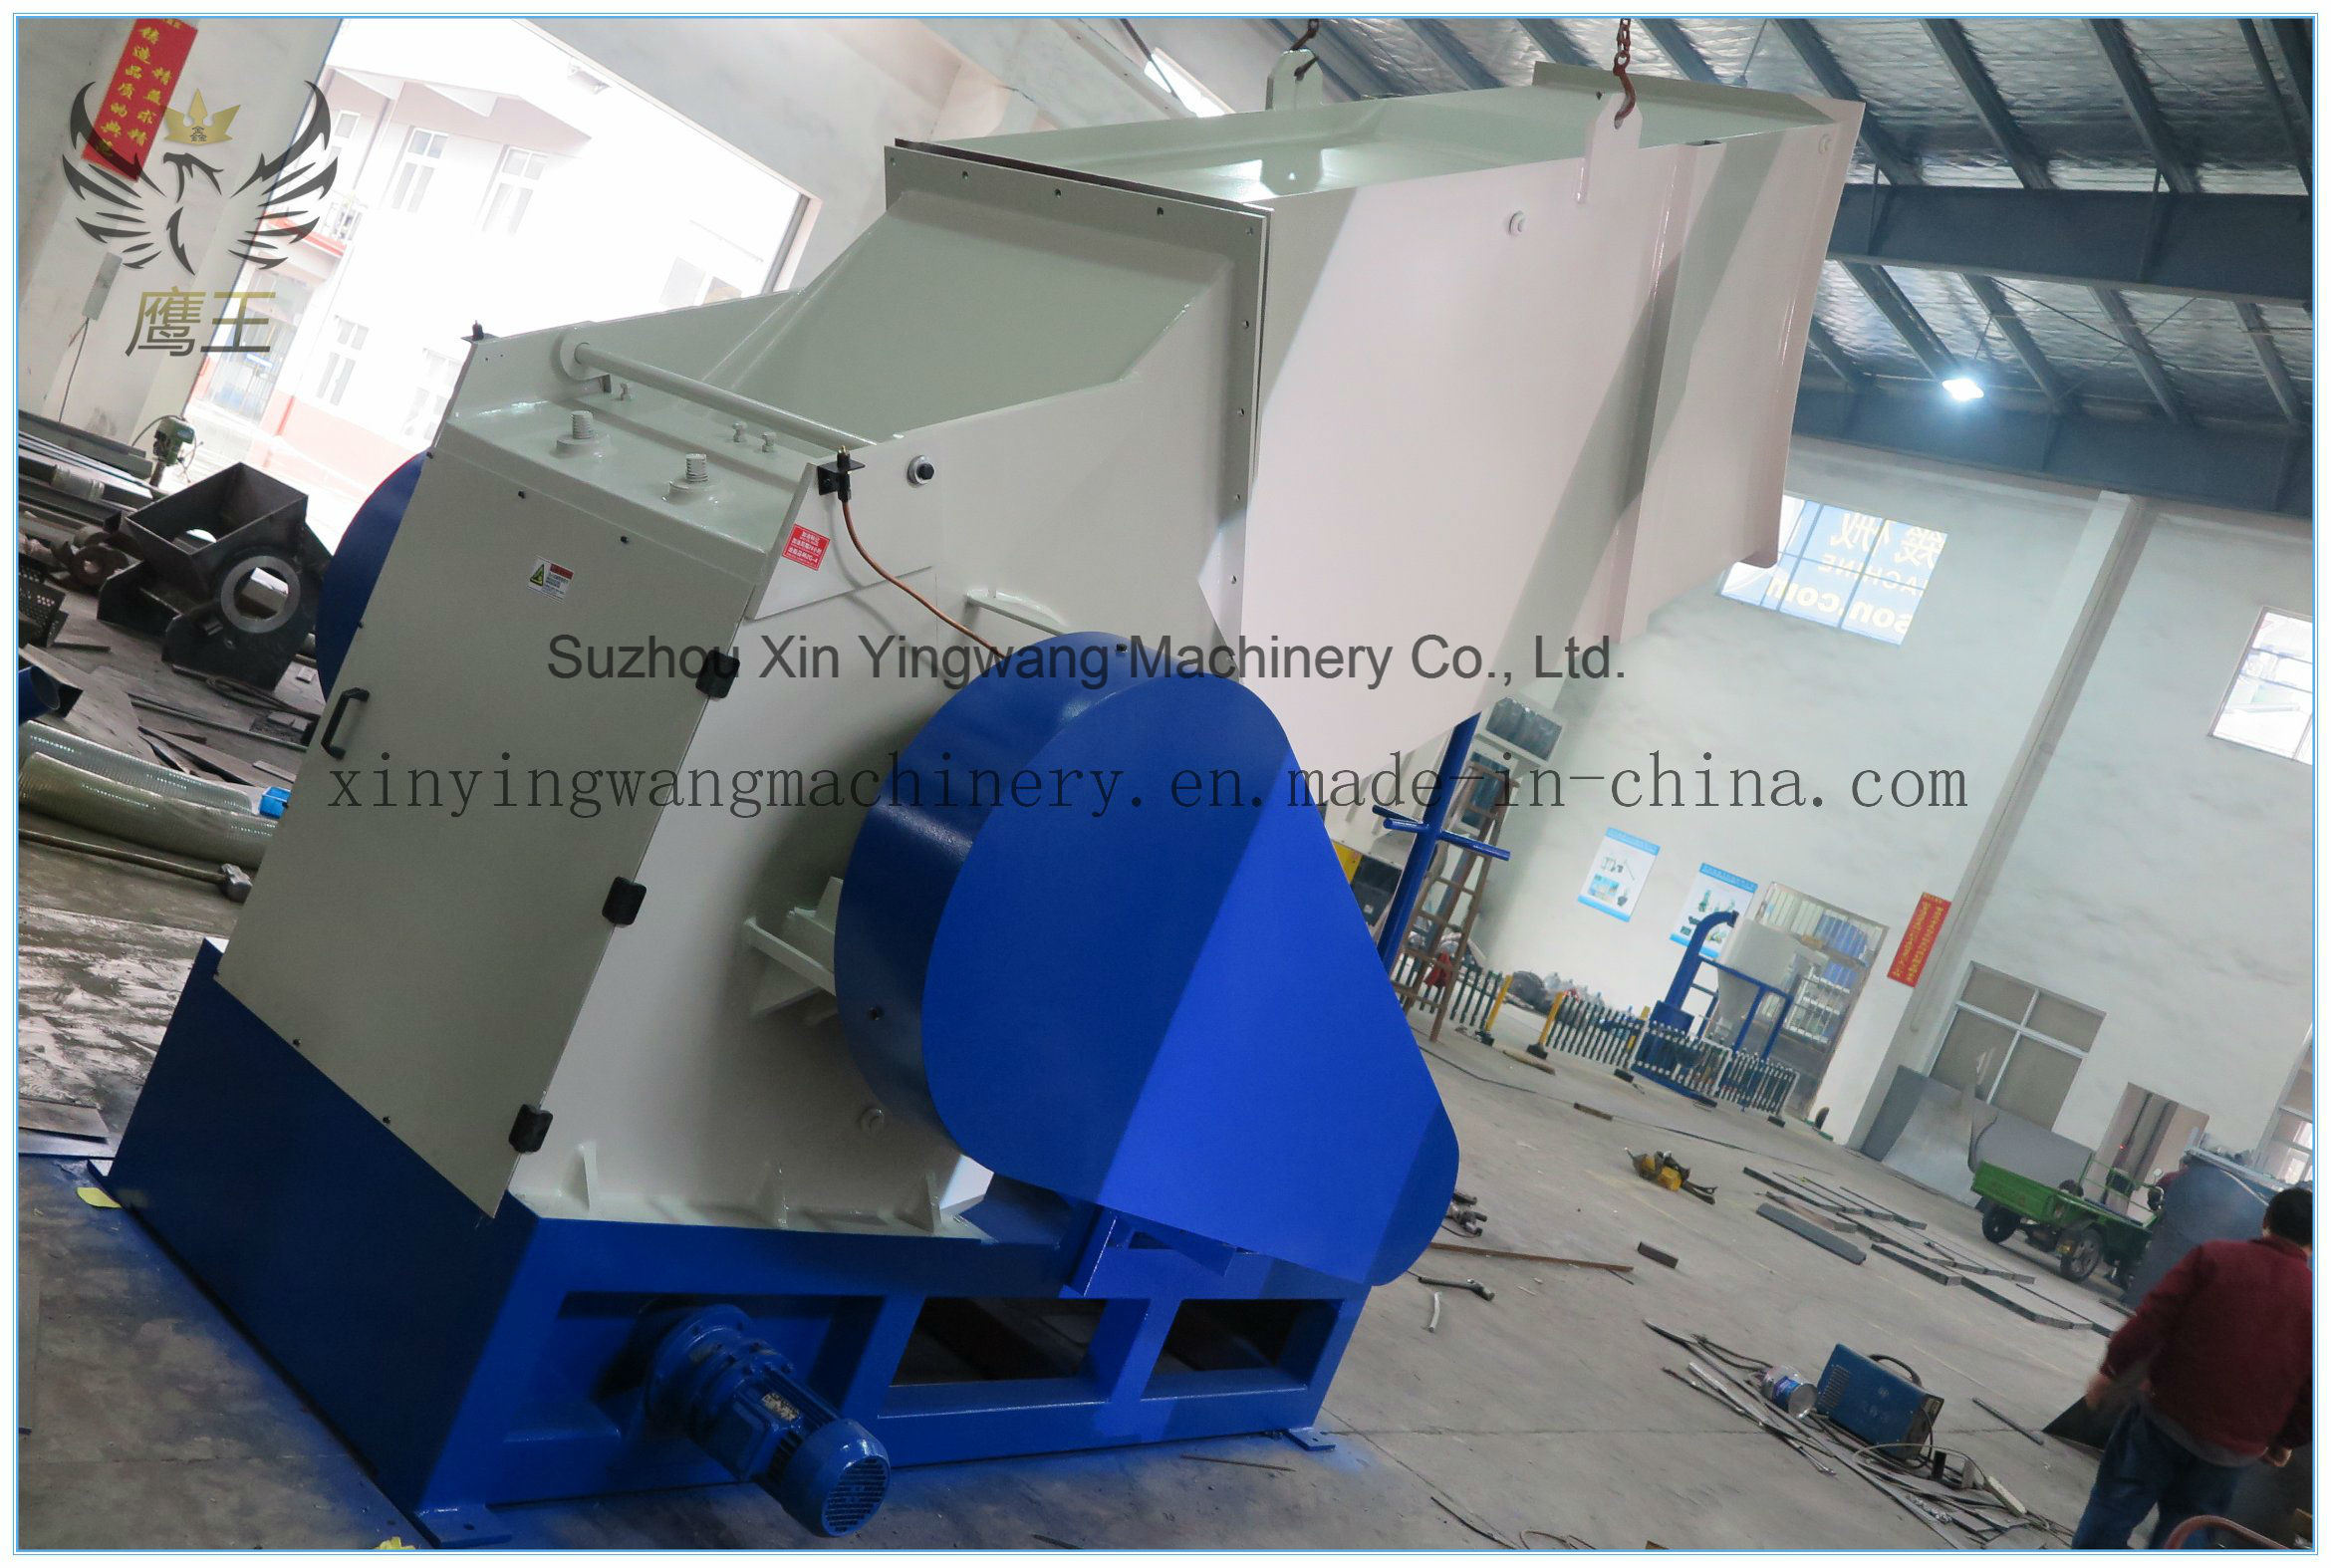 Automatic Plastic Shredder Grinder Crusher Machine